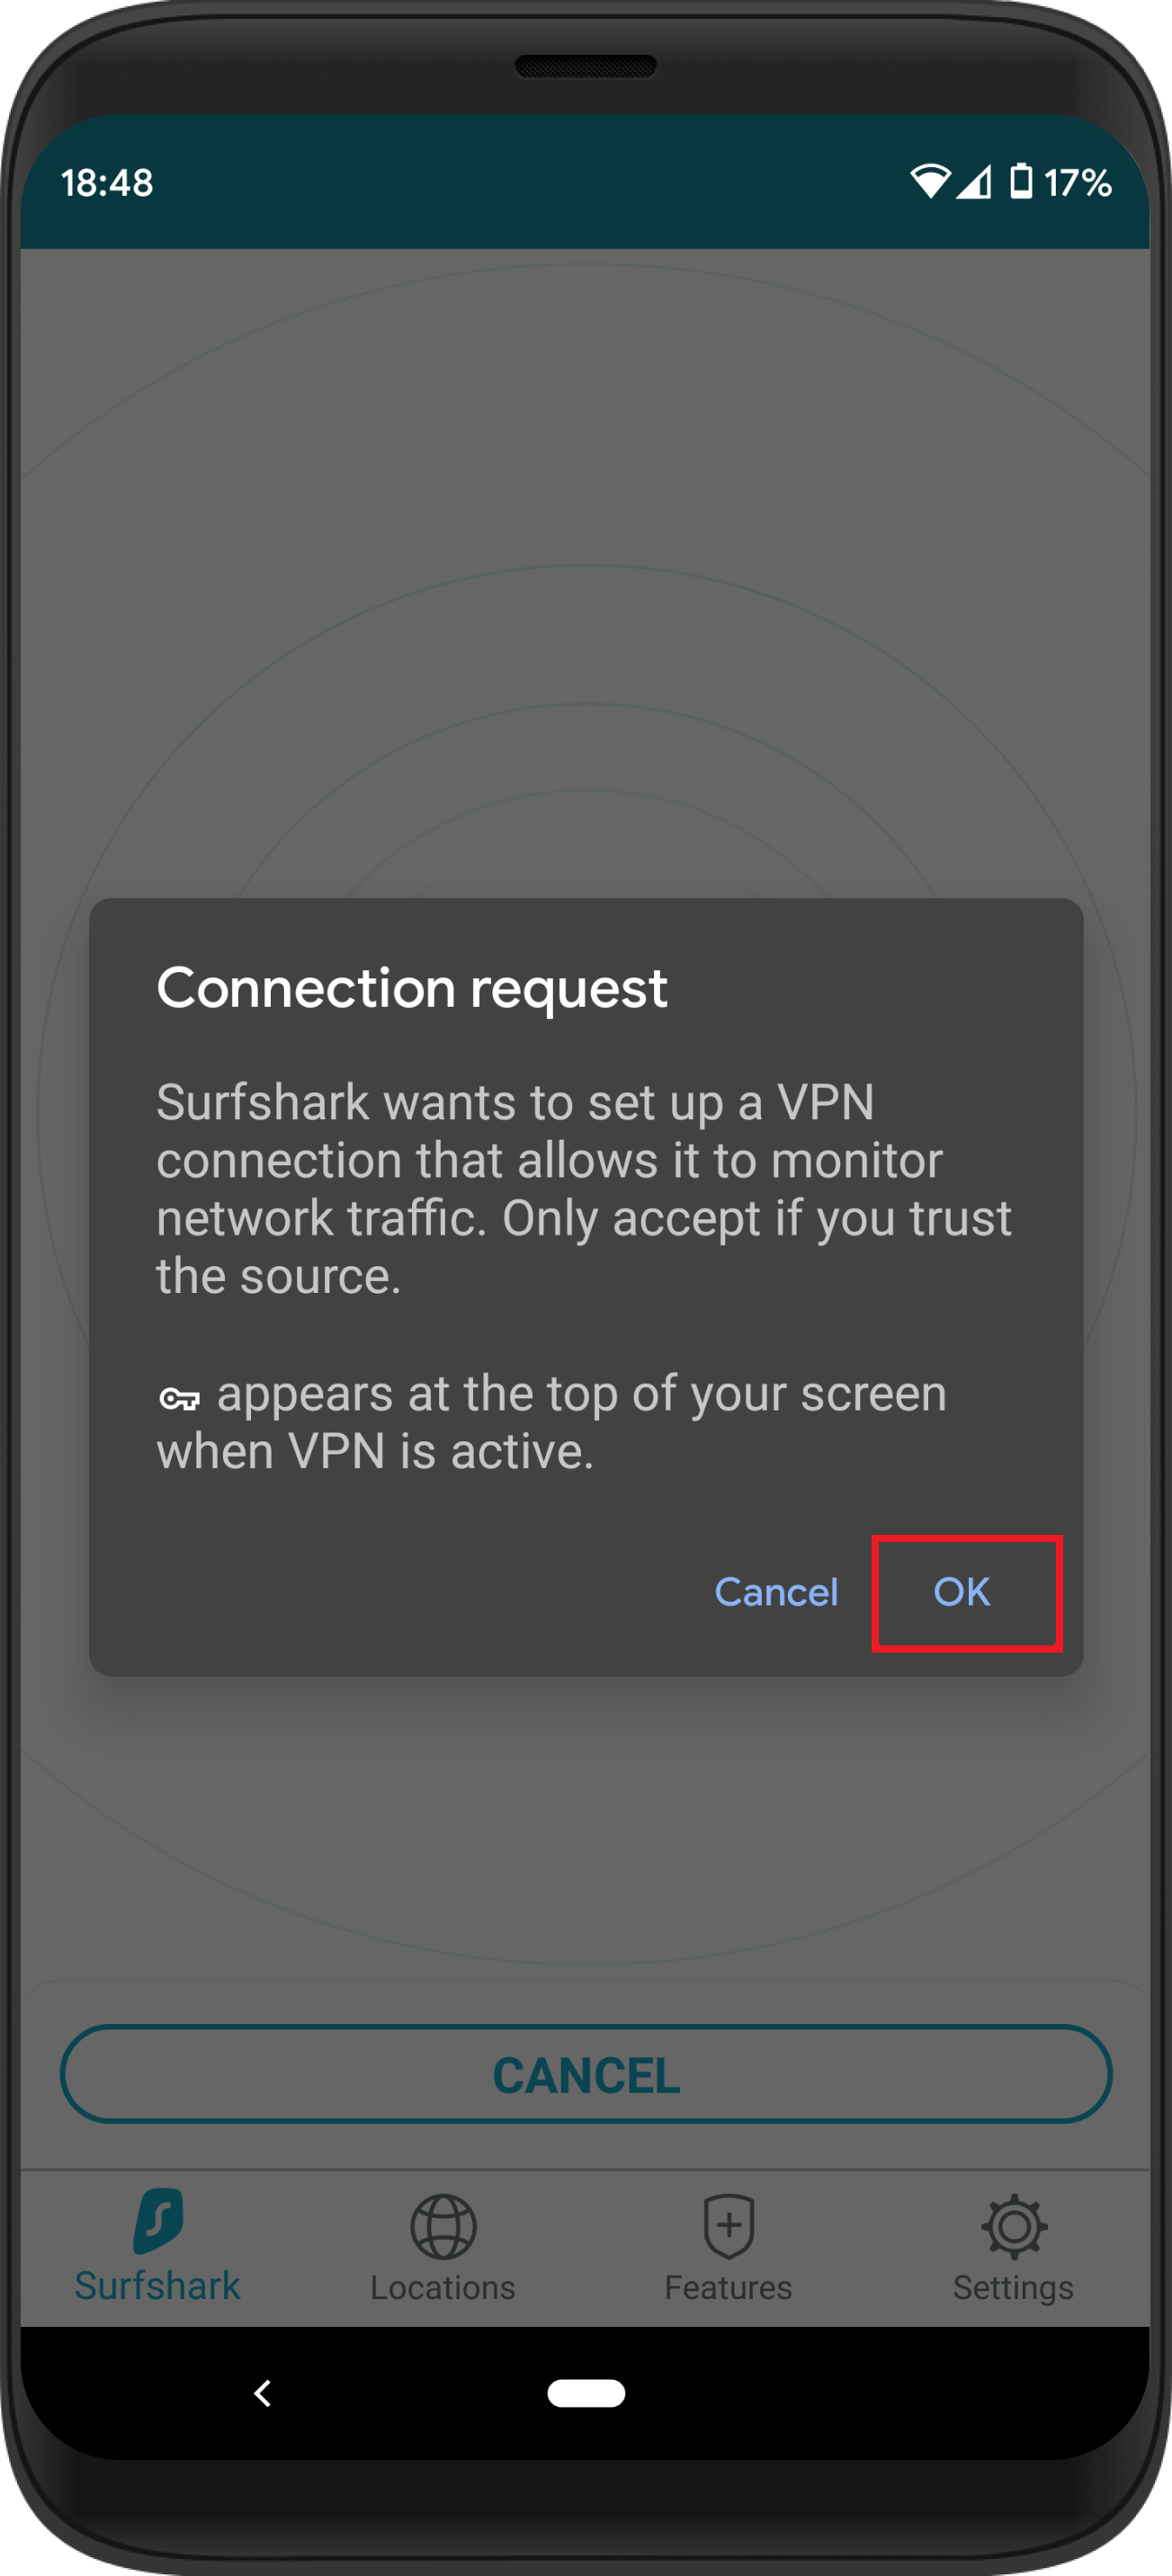 b08dcca72eedbfbdda2fc98d8a029c0e - Does A Vpn Use Cellular Data When Connected To Wifi